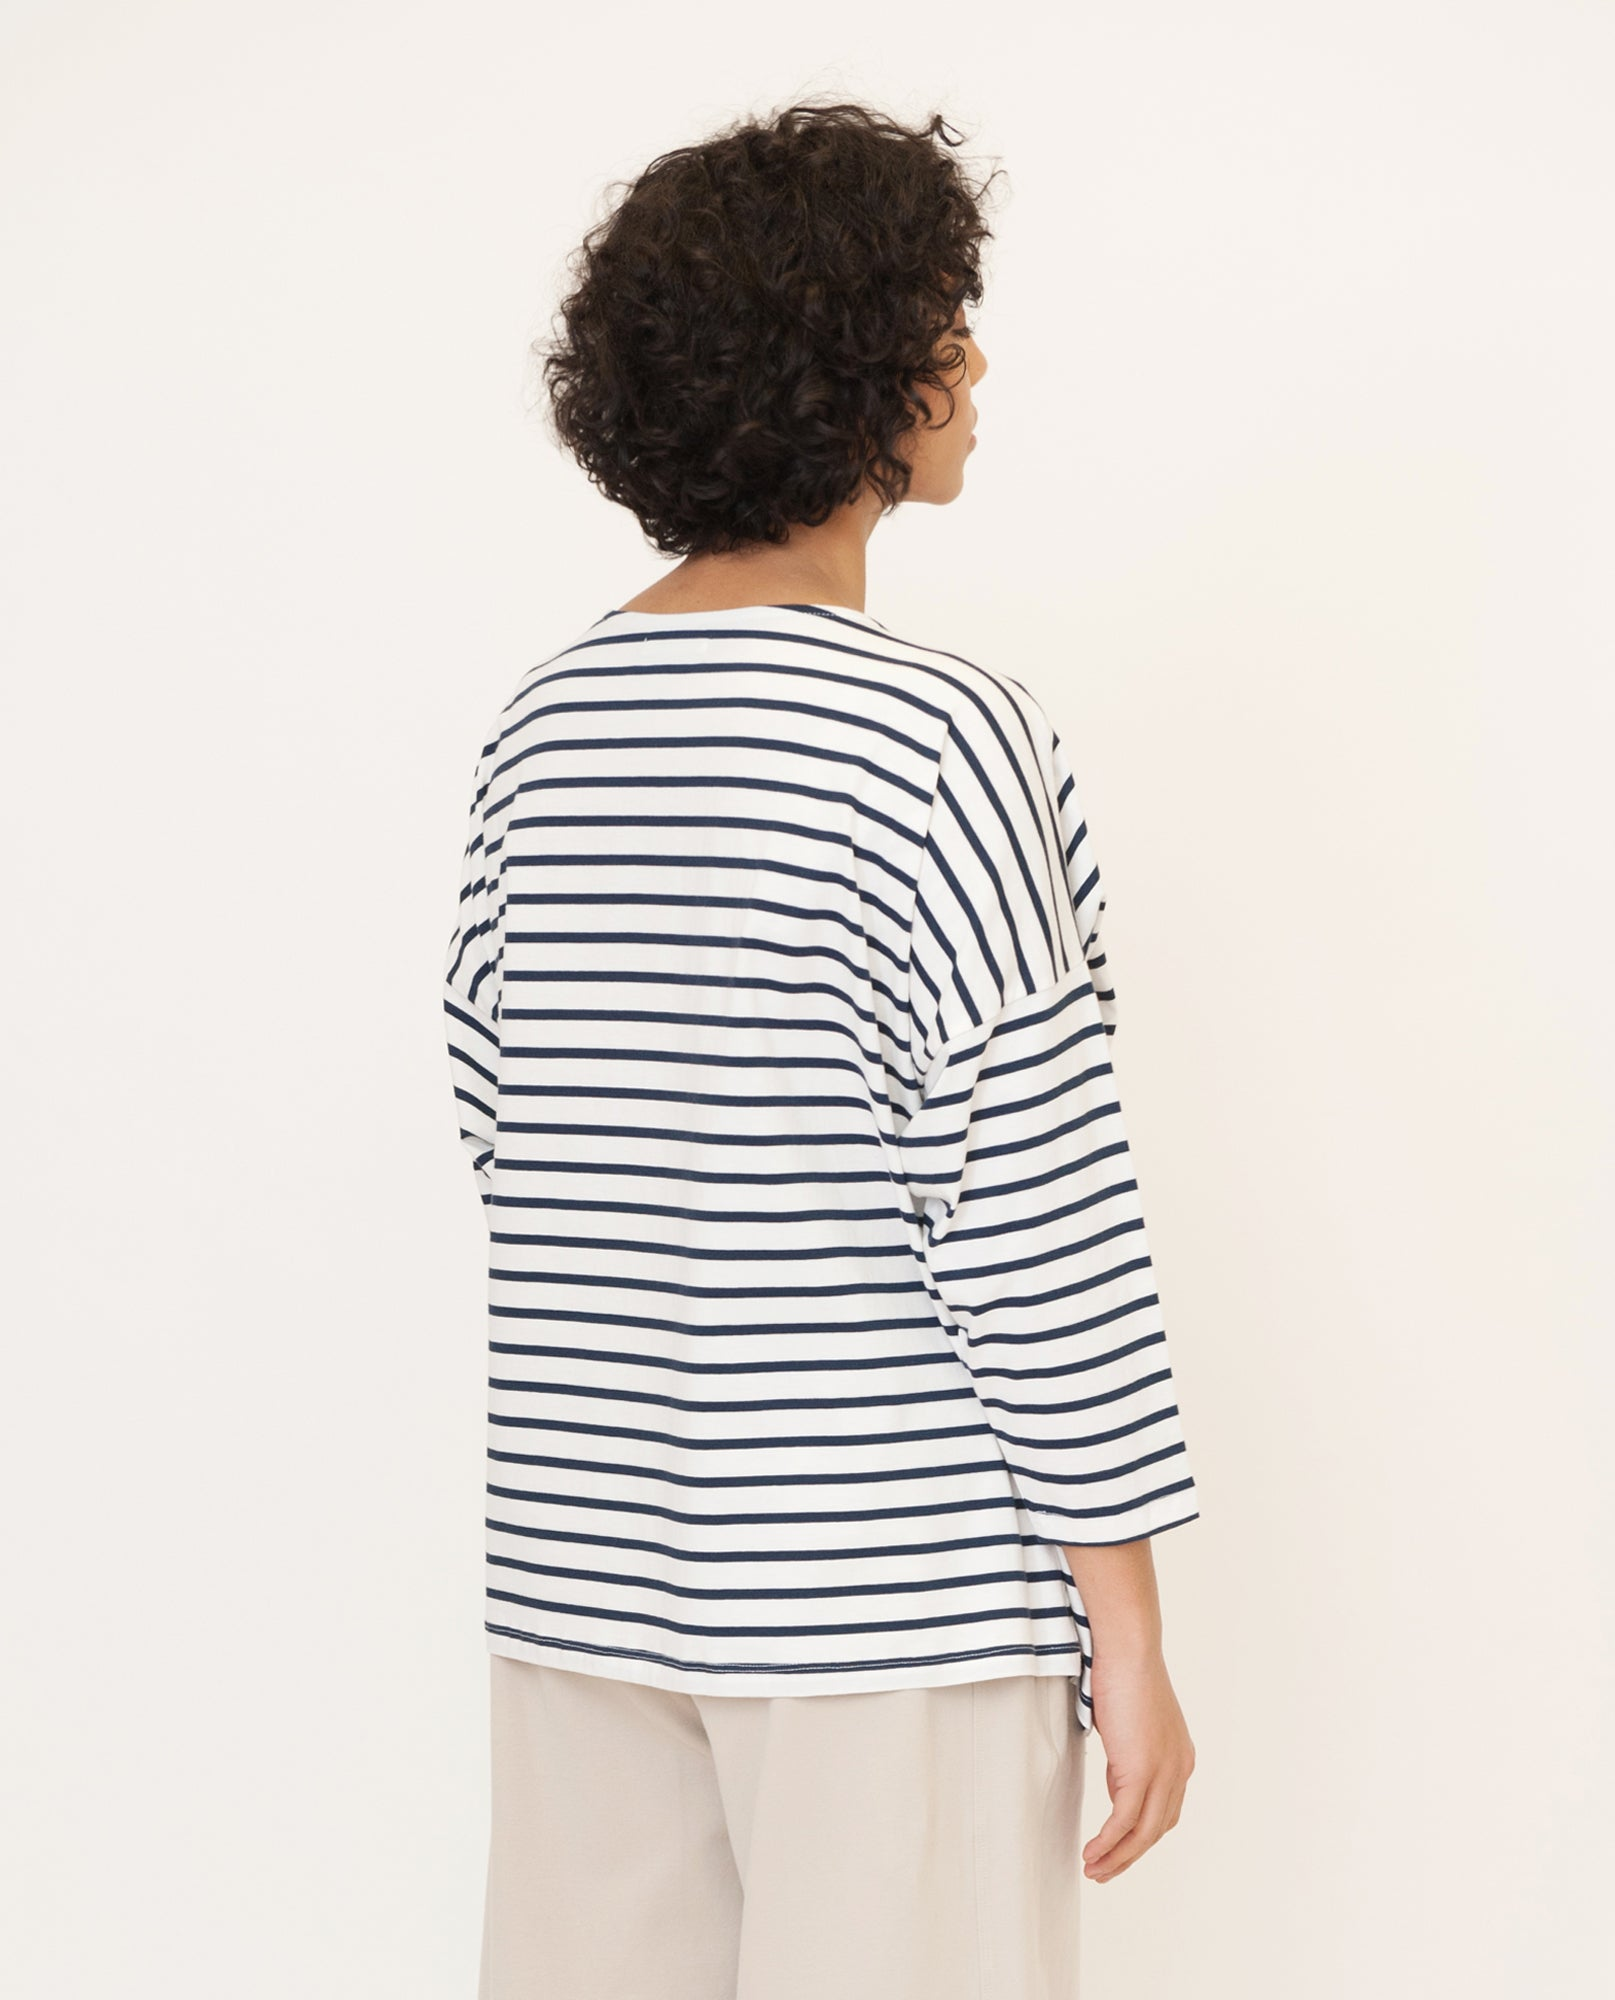 ROSIE Organic Cotton Top In Navy And Cream